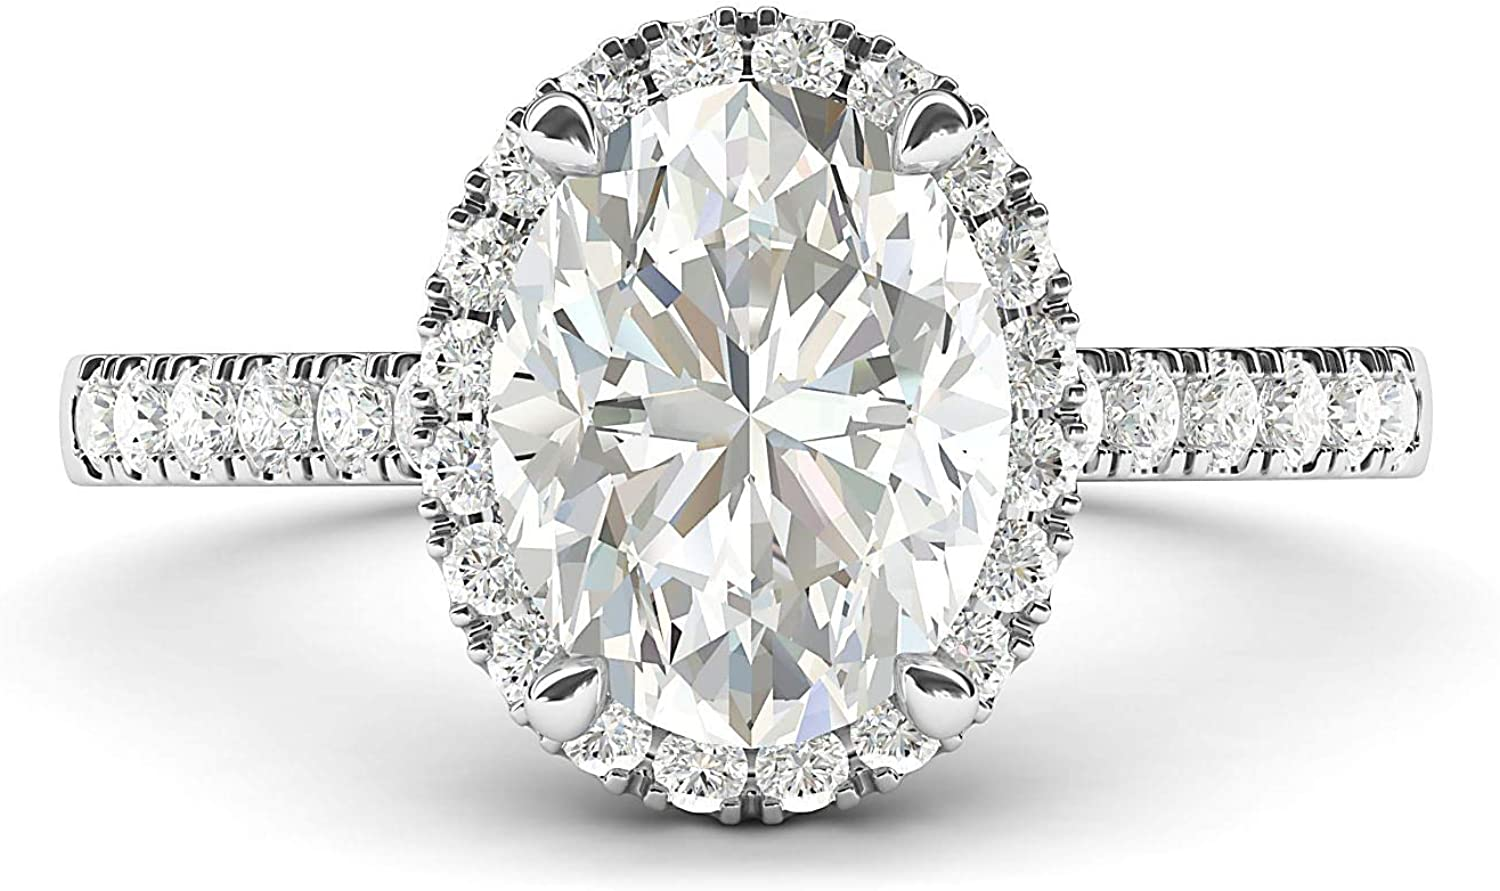 10k White Gold Simulated Oval Cut Diamond Halo Engagement Ring with Side Stones Promise Bridal Ring